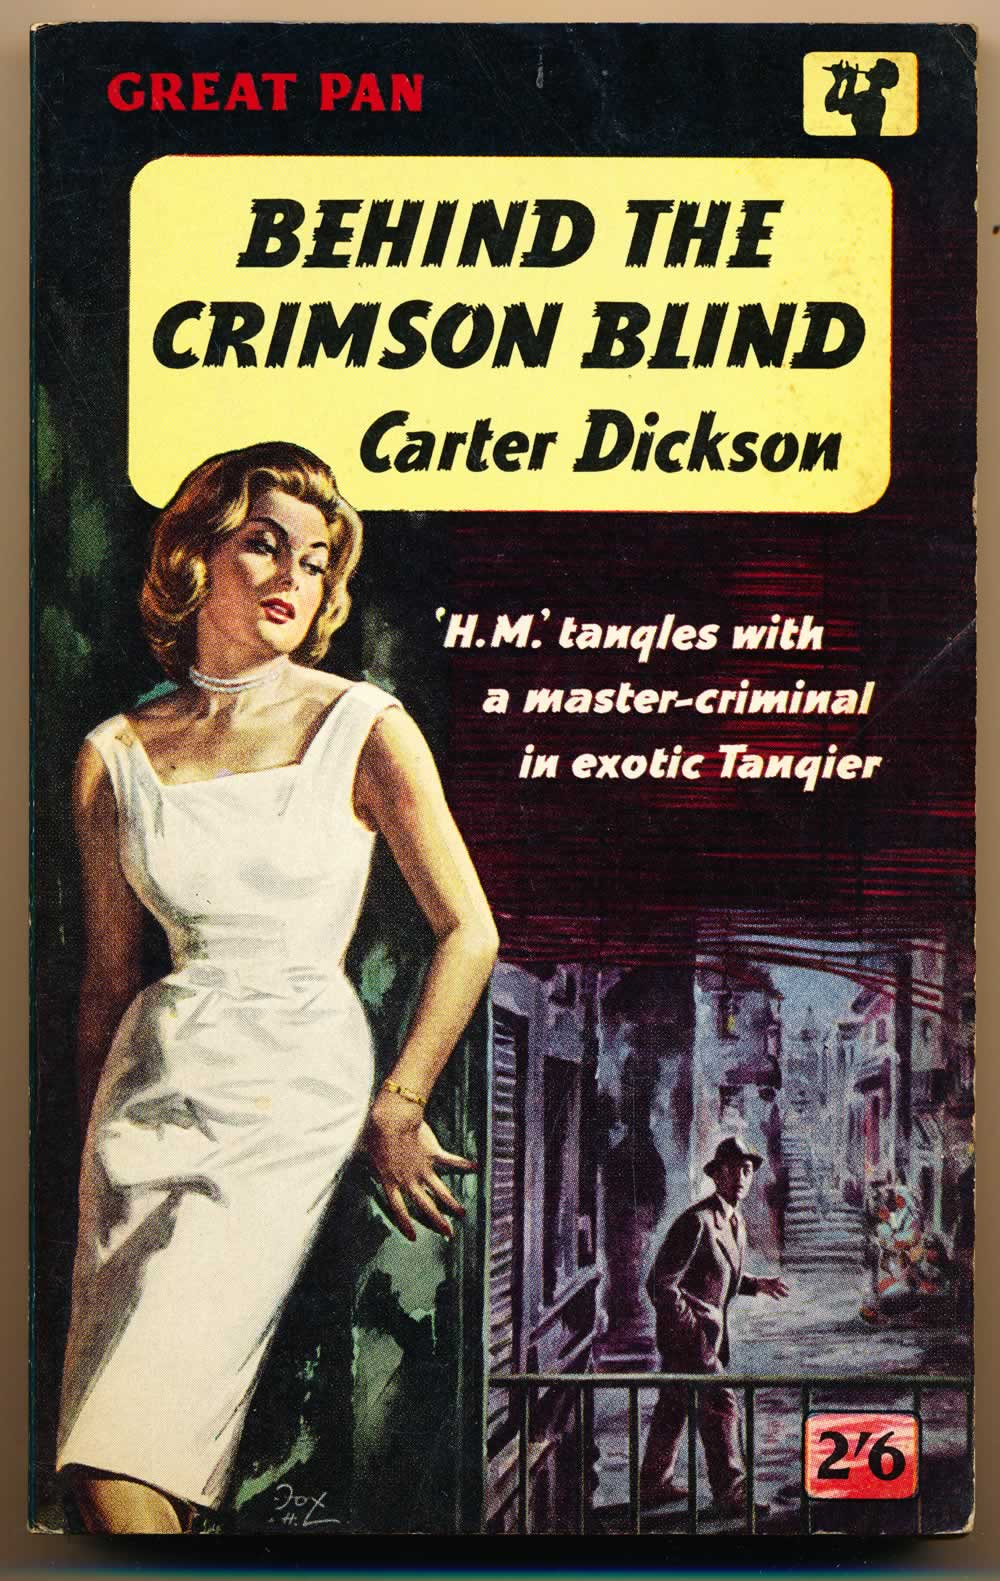 Behind the crimson blind